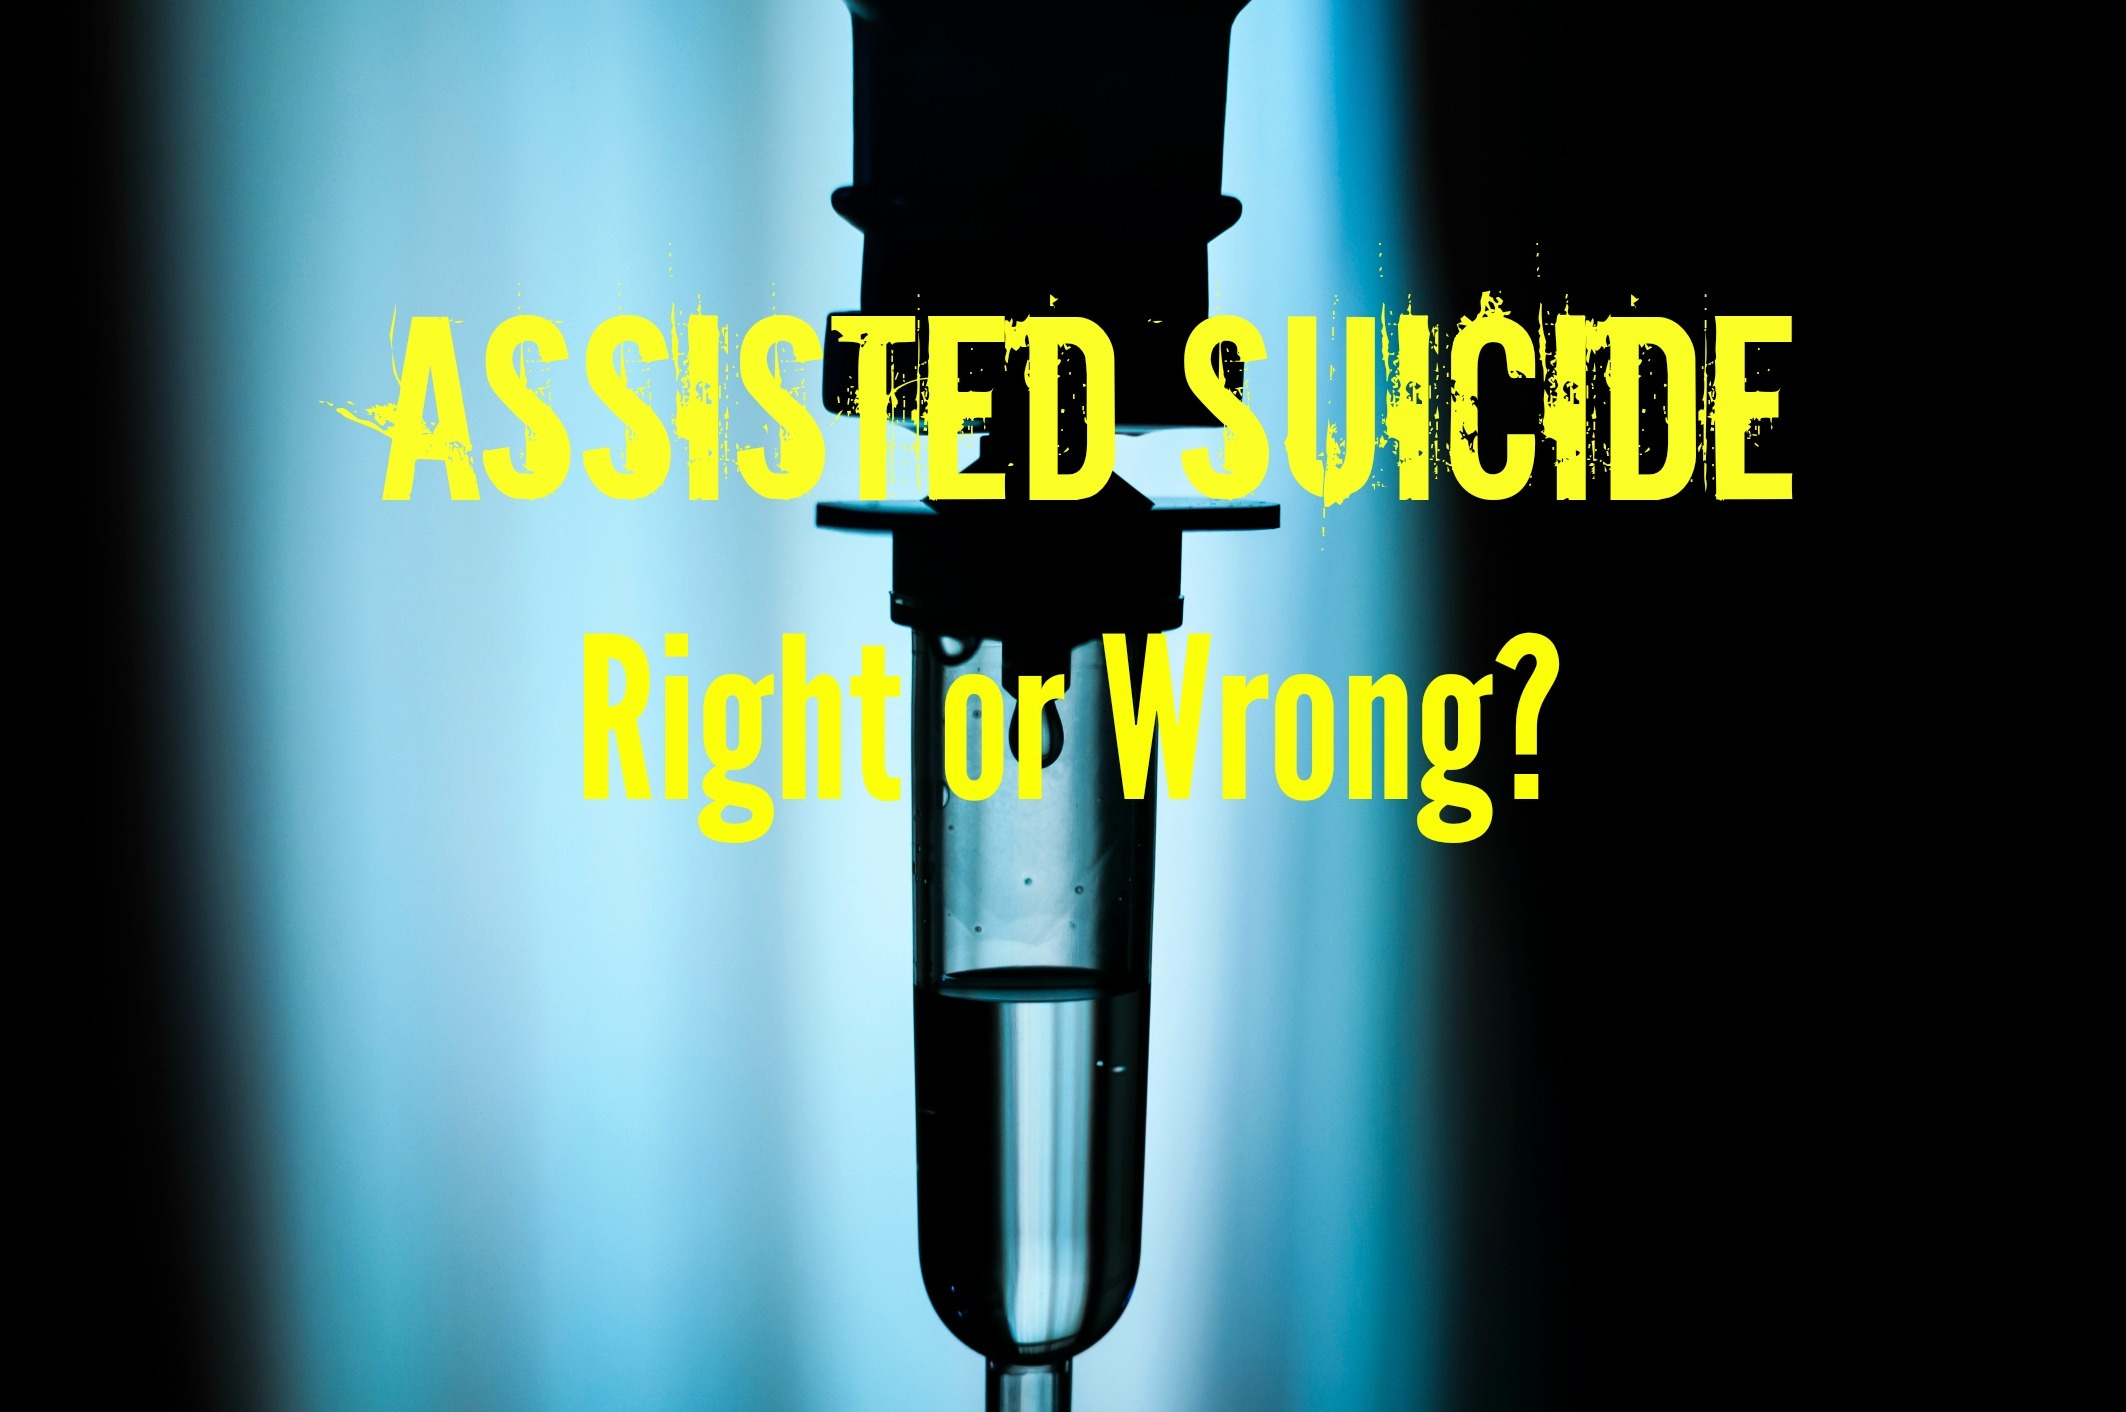 a discussion on the legalization og assisted suicide